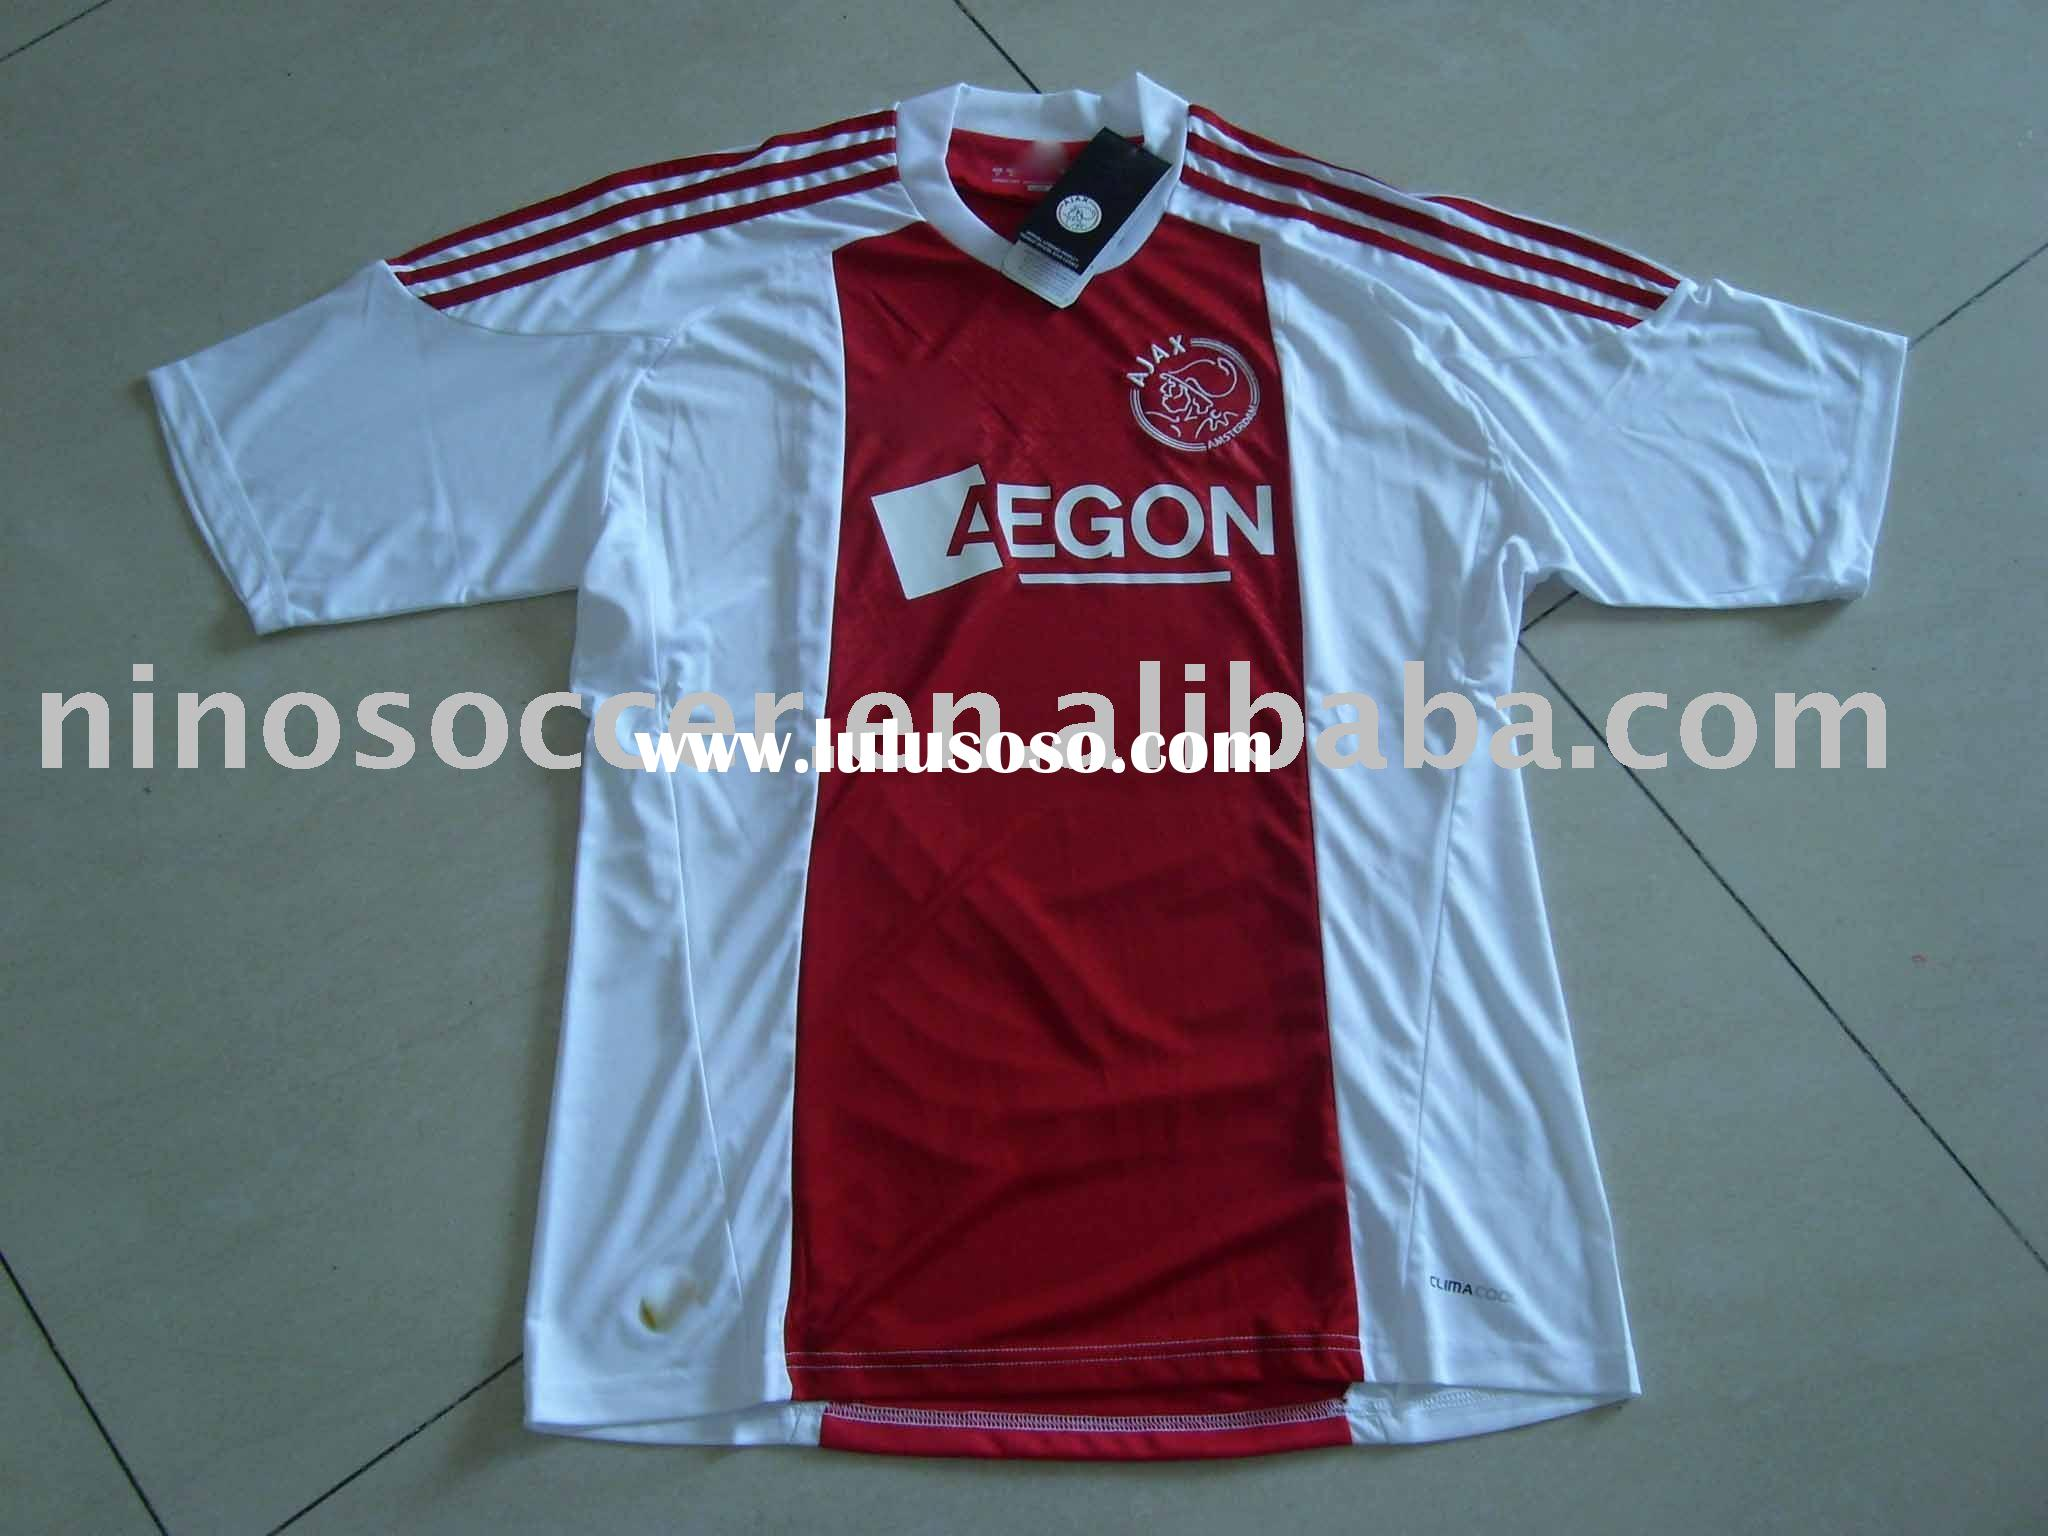 2011 new season AJAX soccer jersey Thailand qualtiy jersey, new season club jersey, new football jer